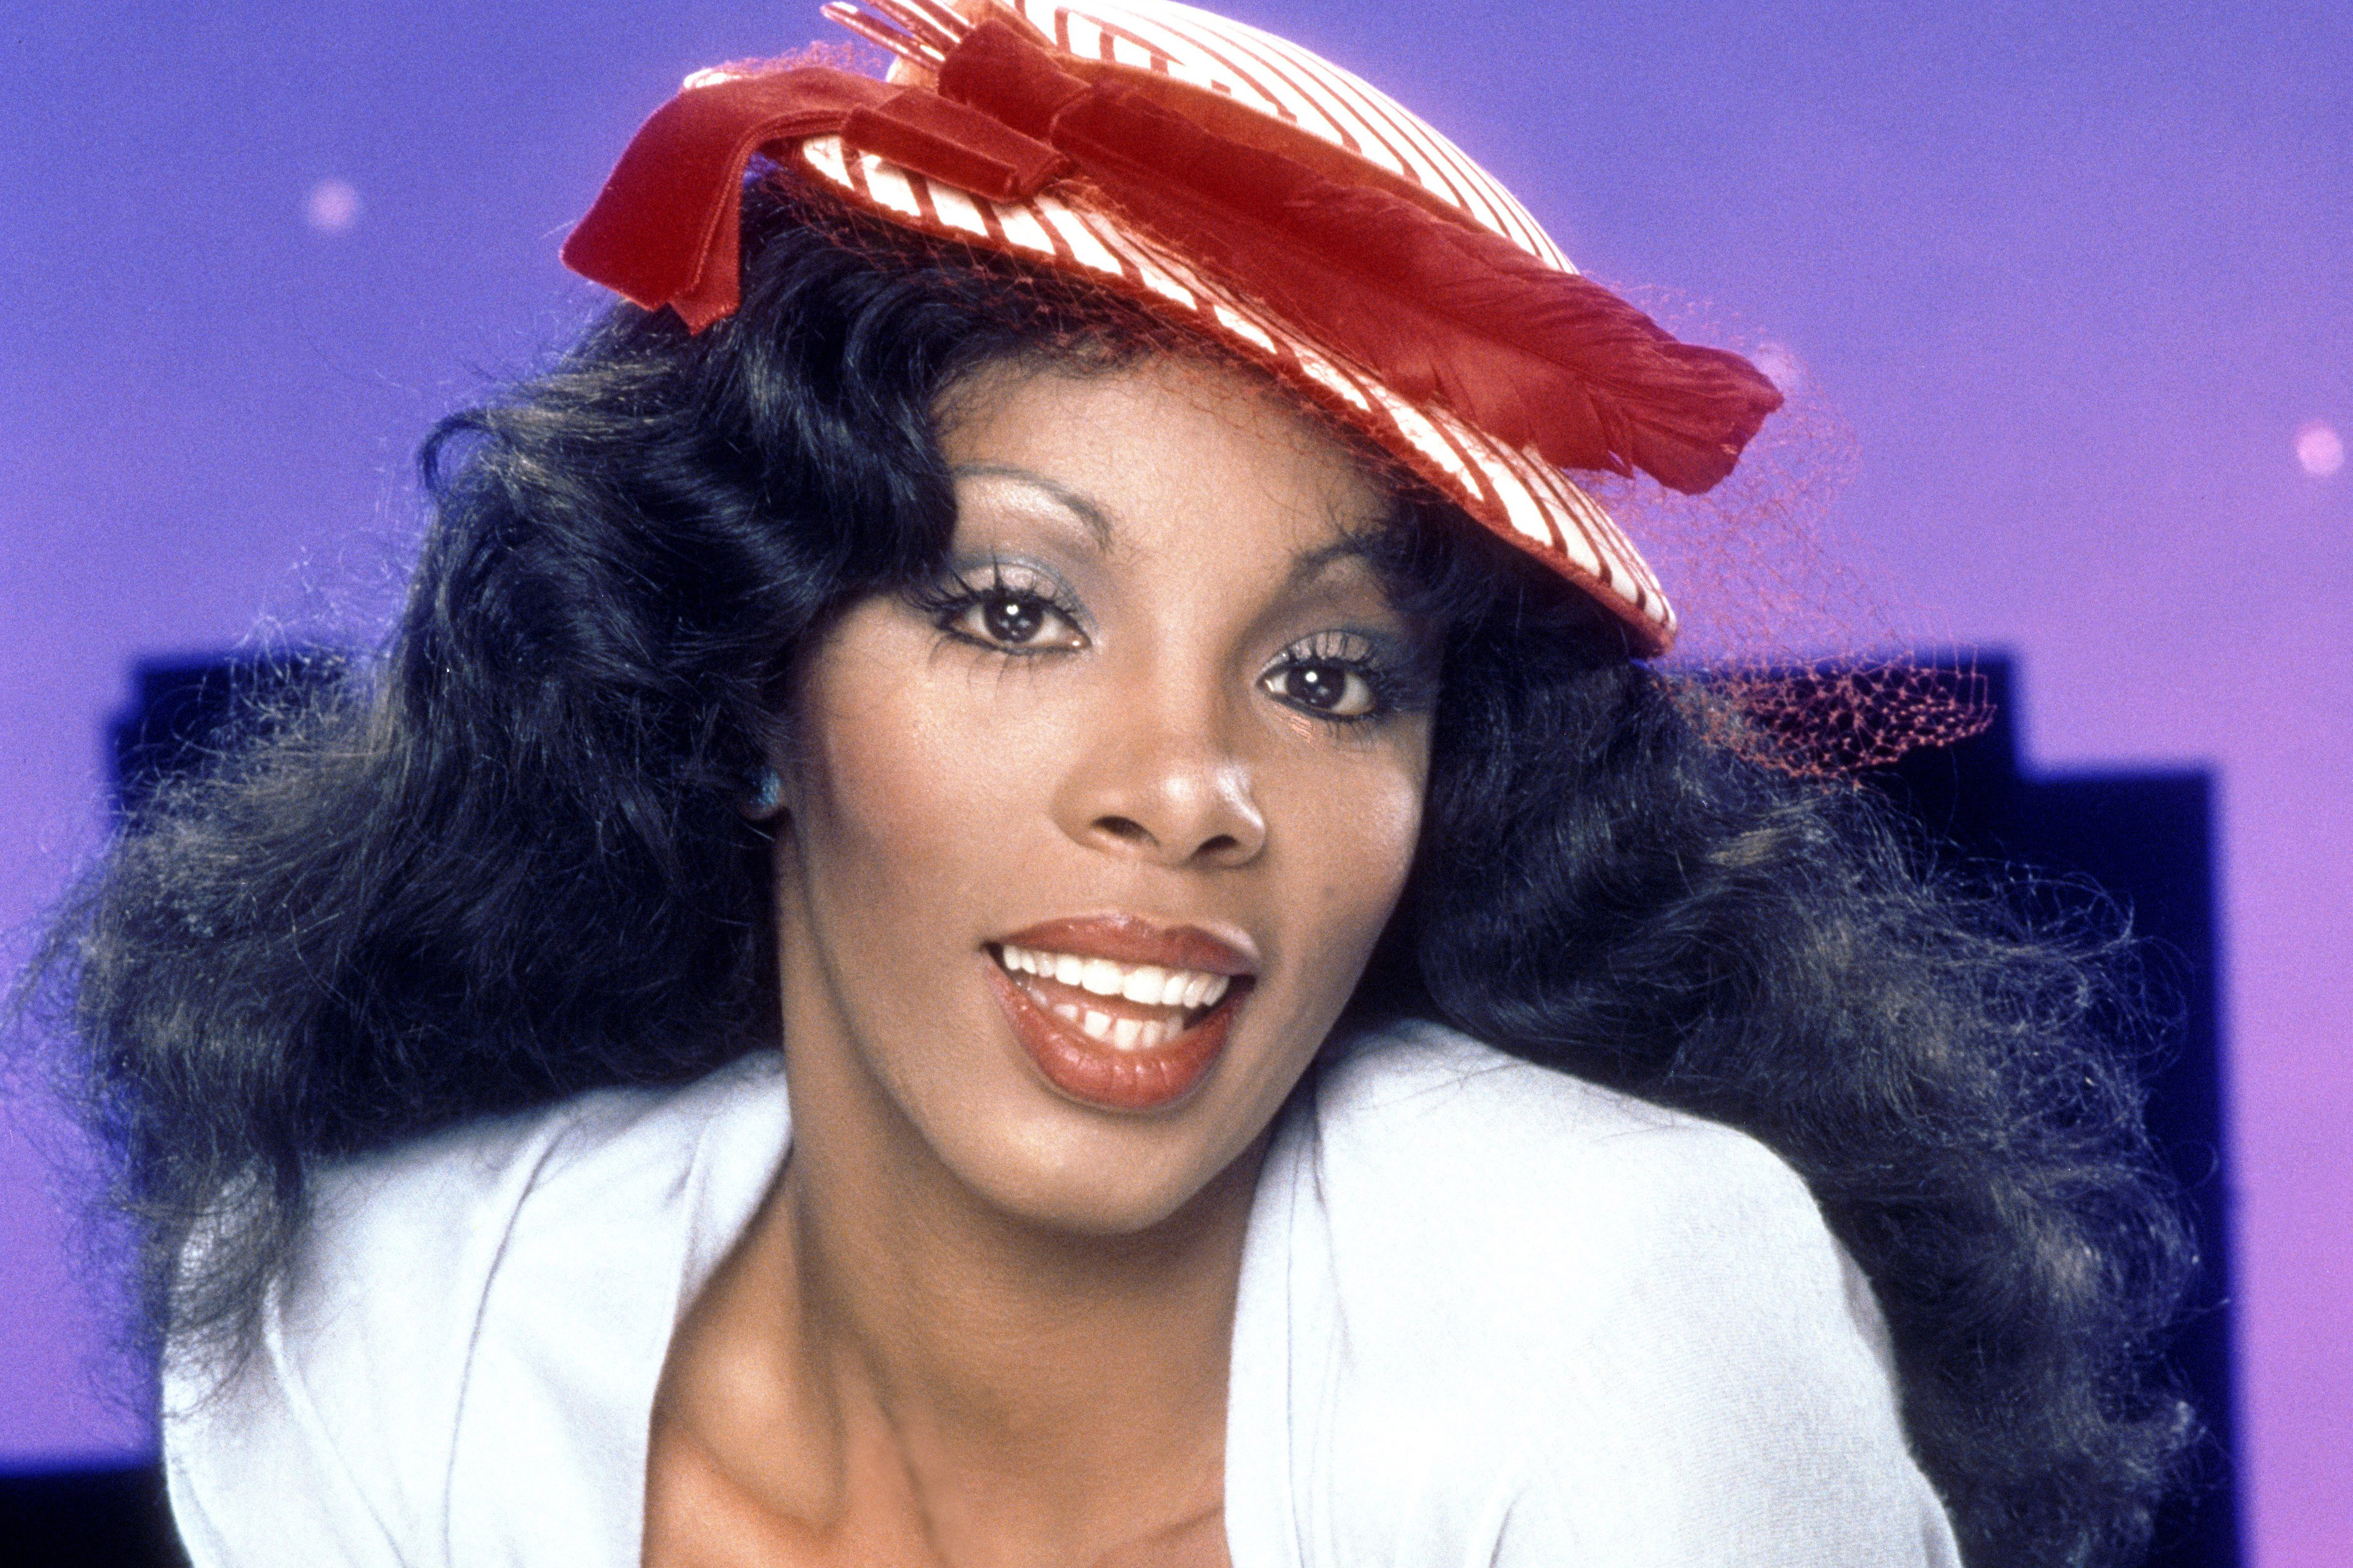 Barber forced to pay royalties over Donna Summer ringtone